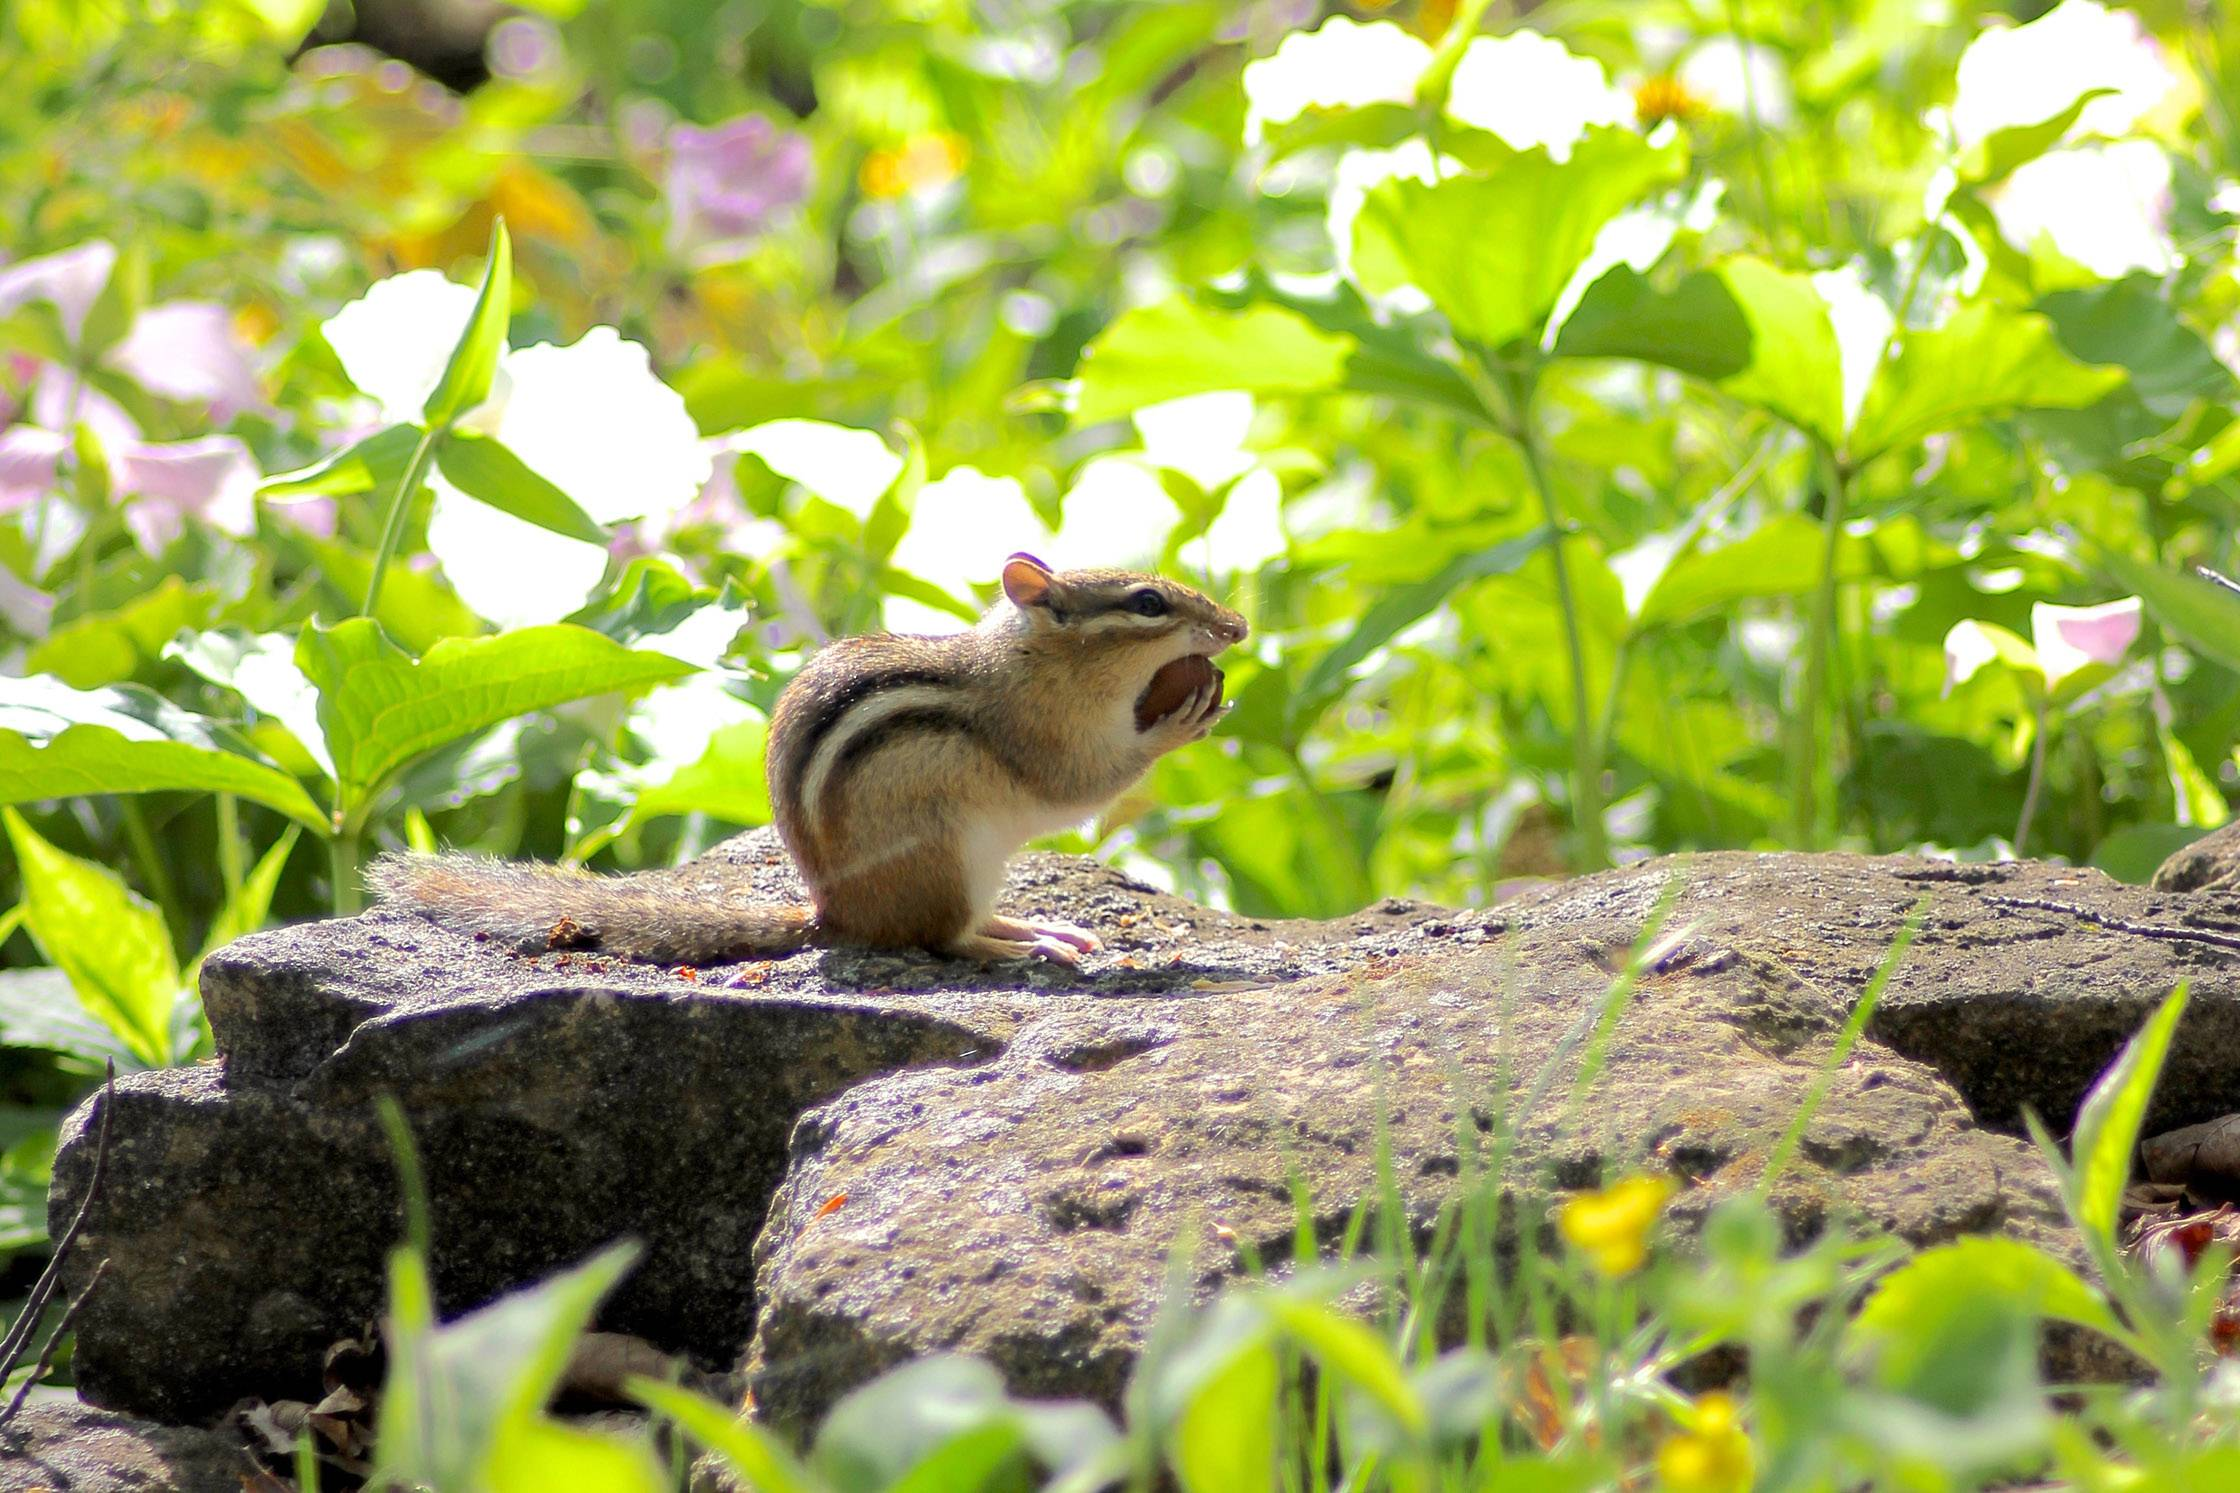 A chipmunk eats a big morsel for breakfast while scampering through the trillium last May in Door County, Wis.